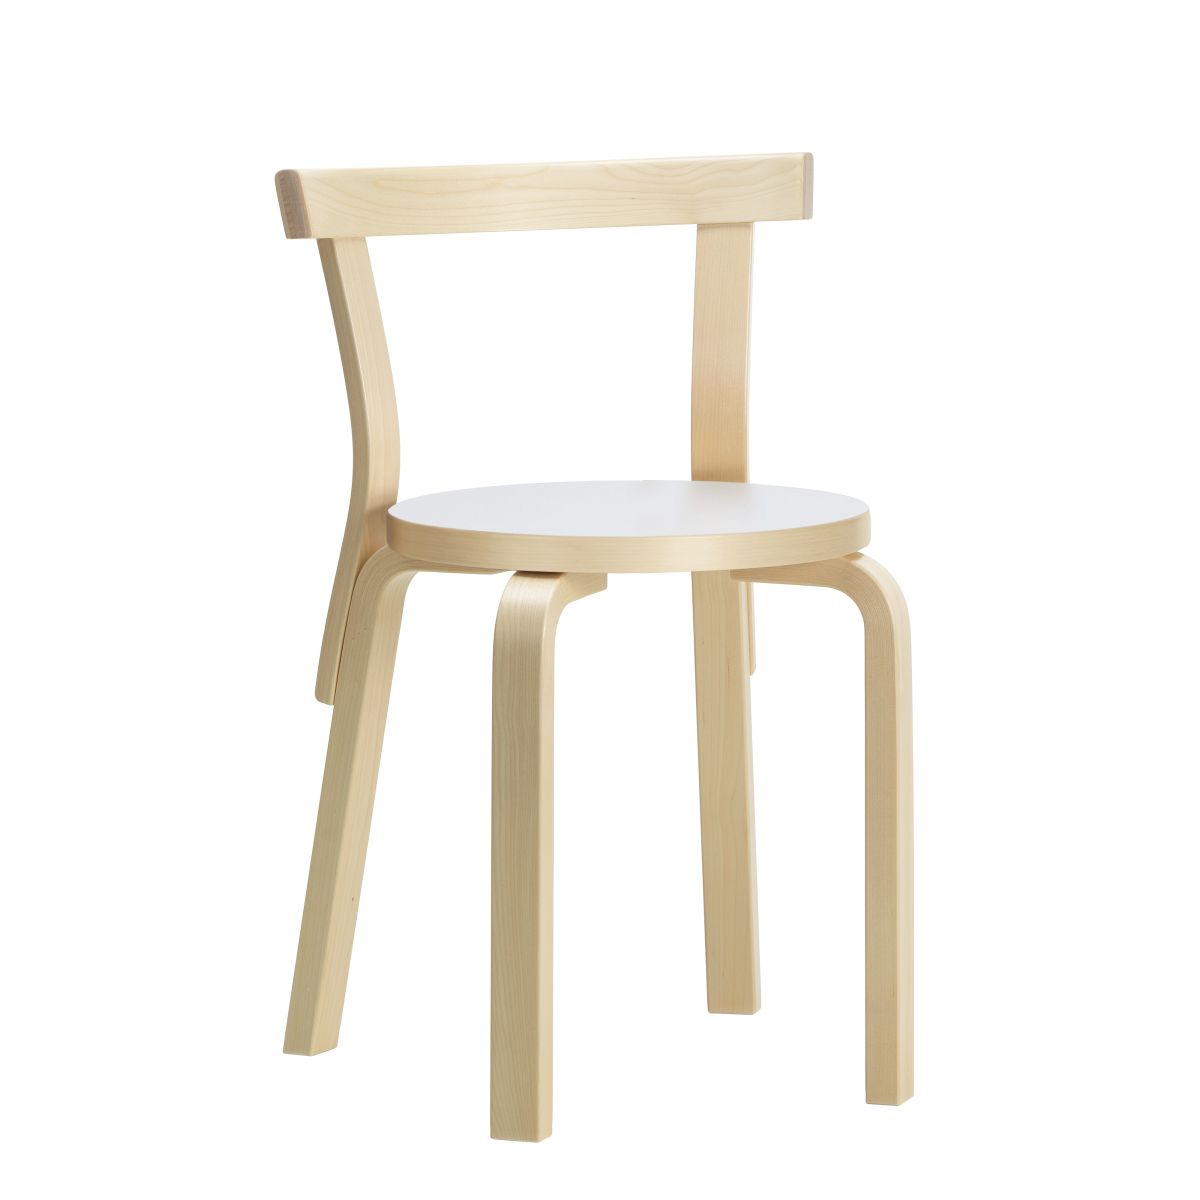 Chair-68-birch-natural-lacquered-seat-white-HPL_F-2912698